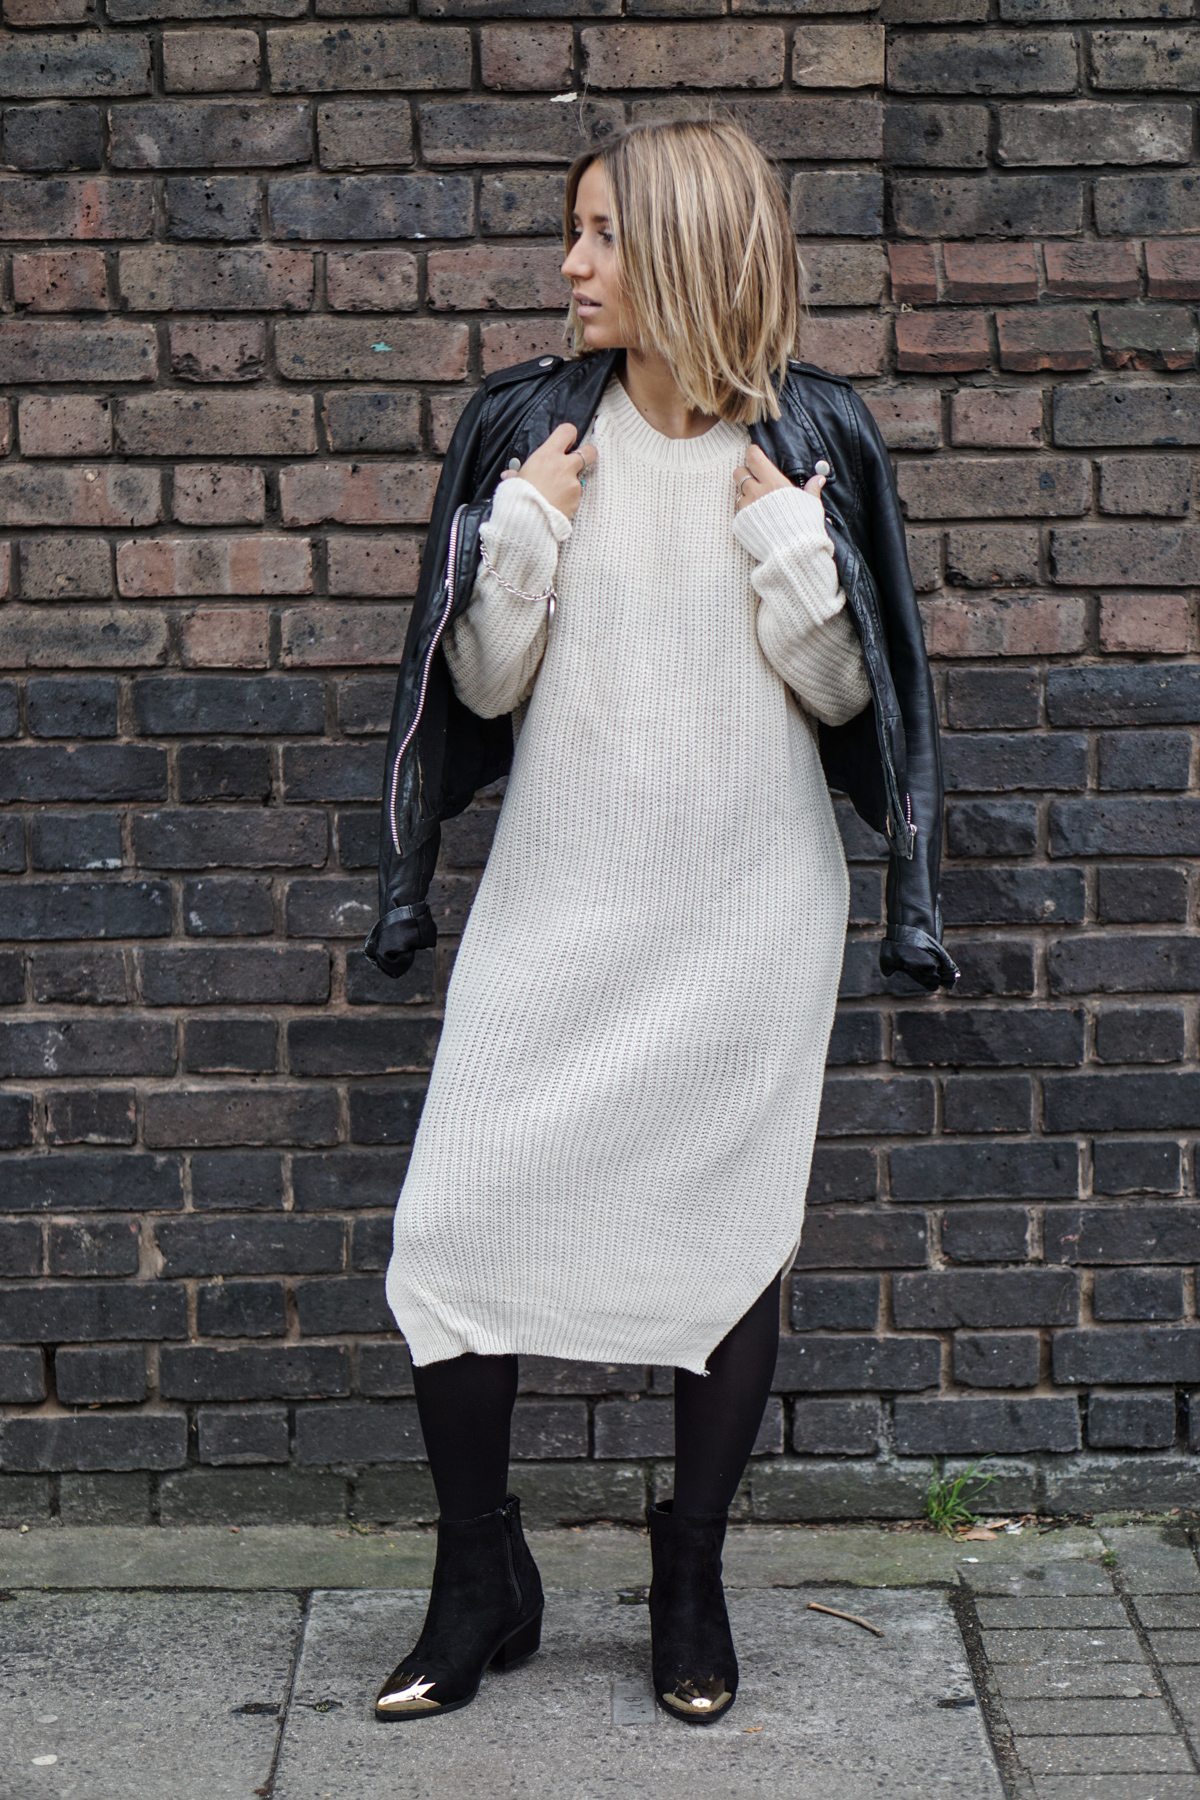 Steal Her Style: Sweater Dress Worn Two Ways | Love Daily Dose